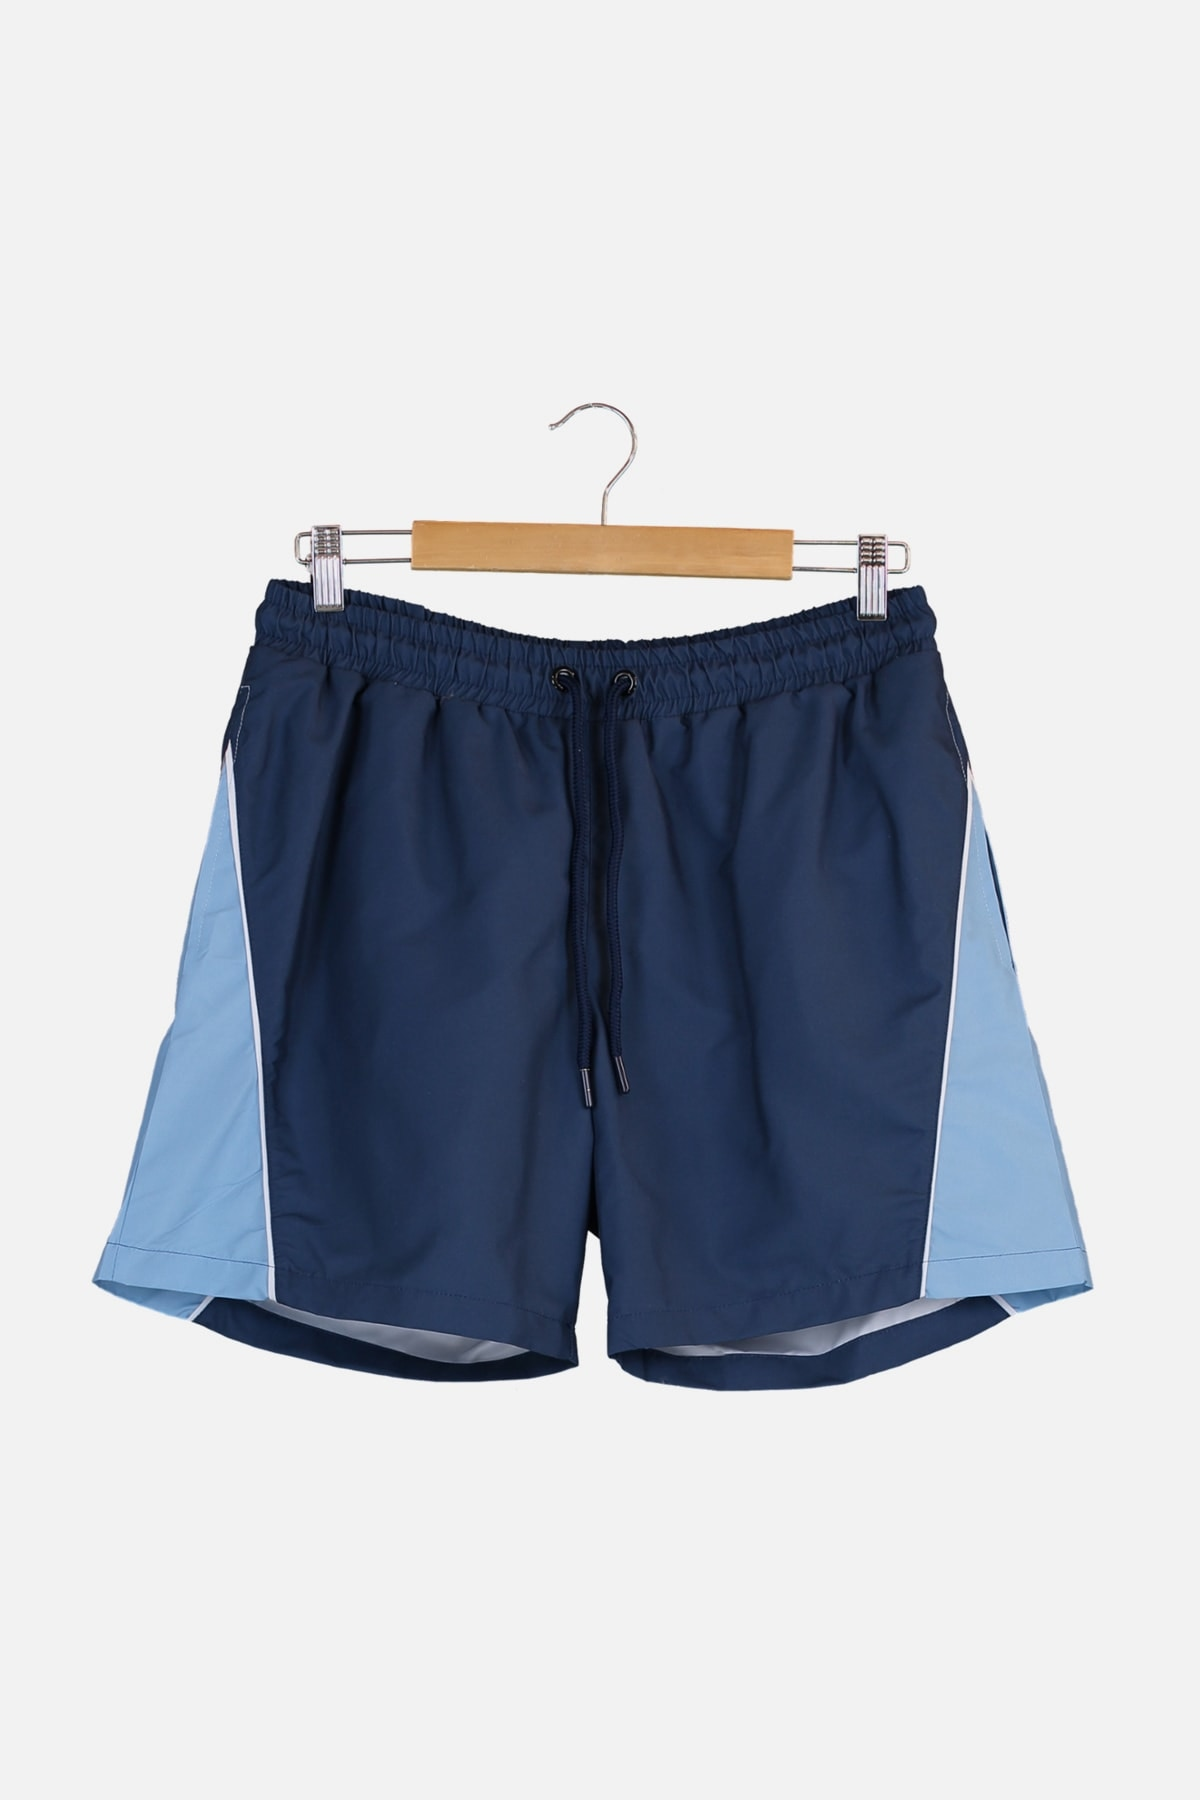 Trendyol Male Color Block Piping Sea Shorts TMNSS21DS0007